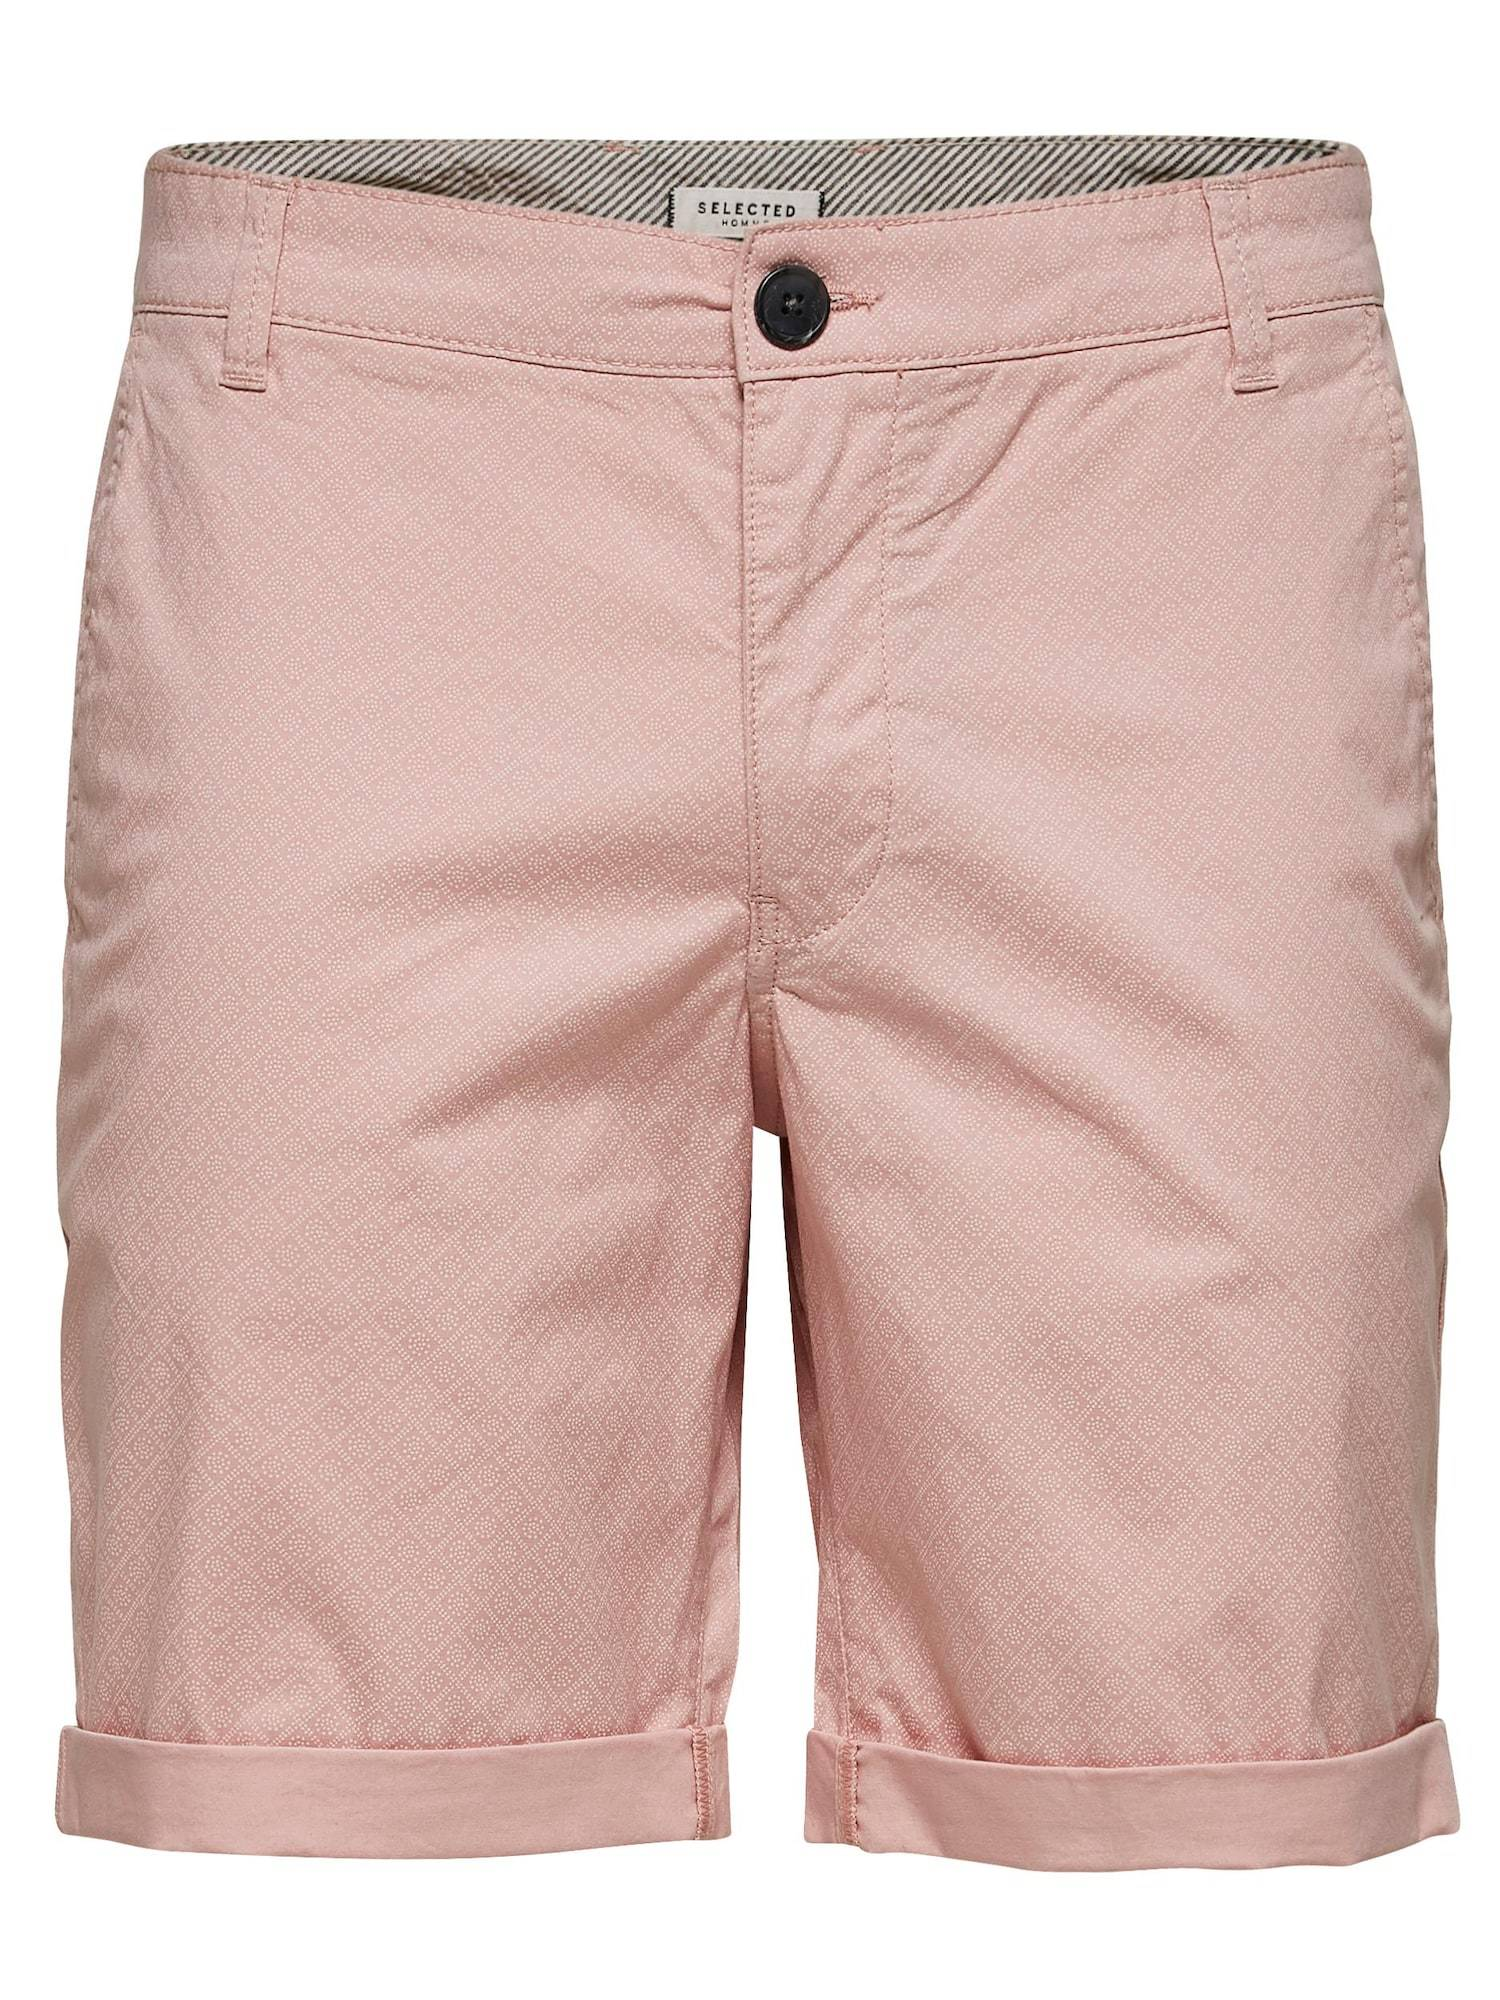 SELECTED HOMME Pantalon chino 'Paris'  - Rose - Taille: M - male